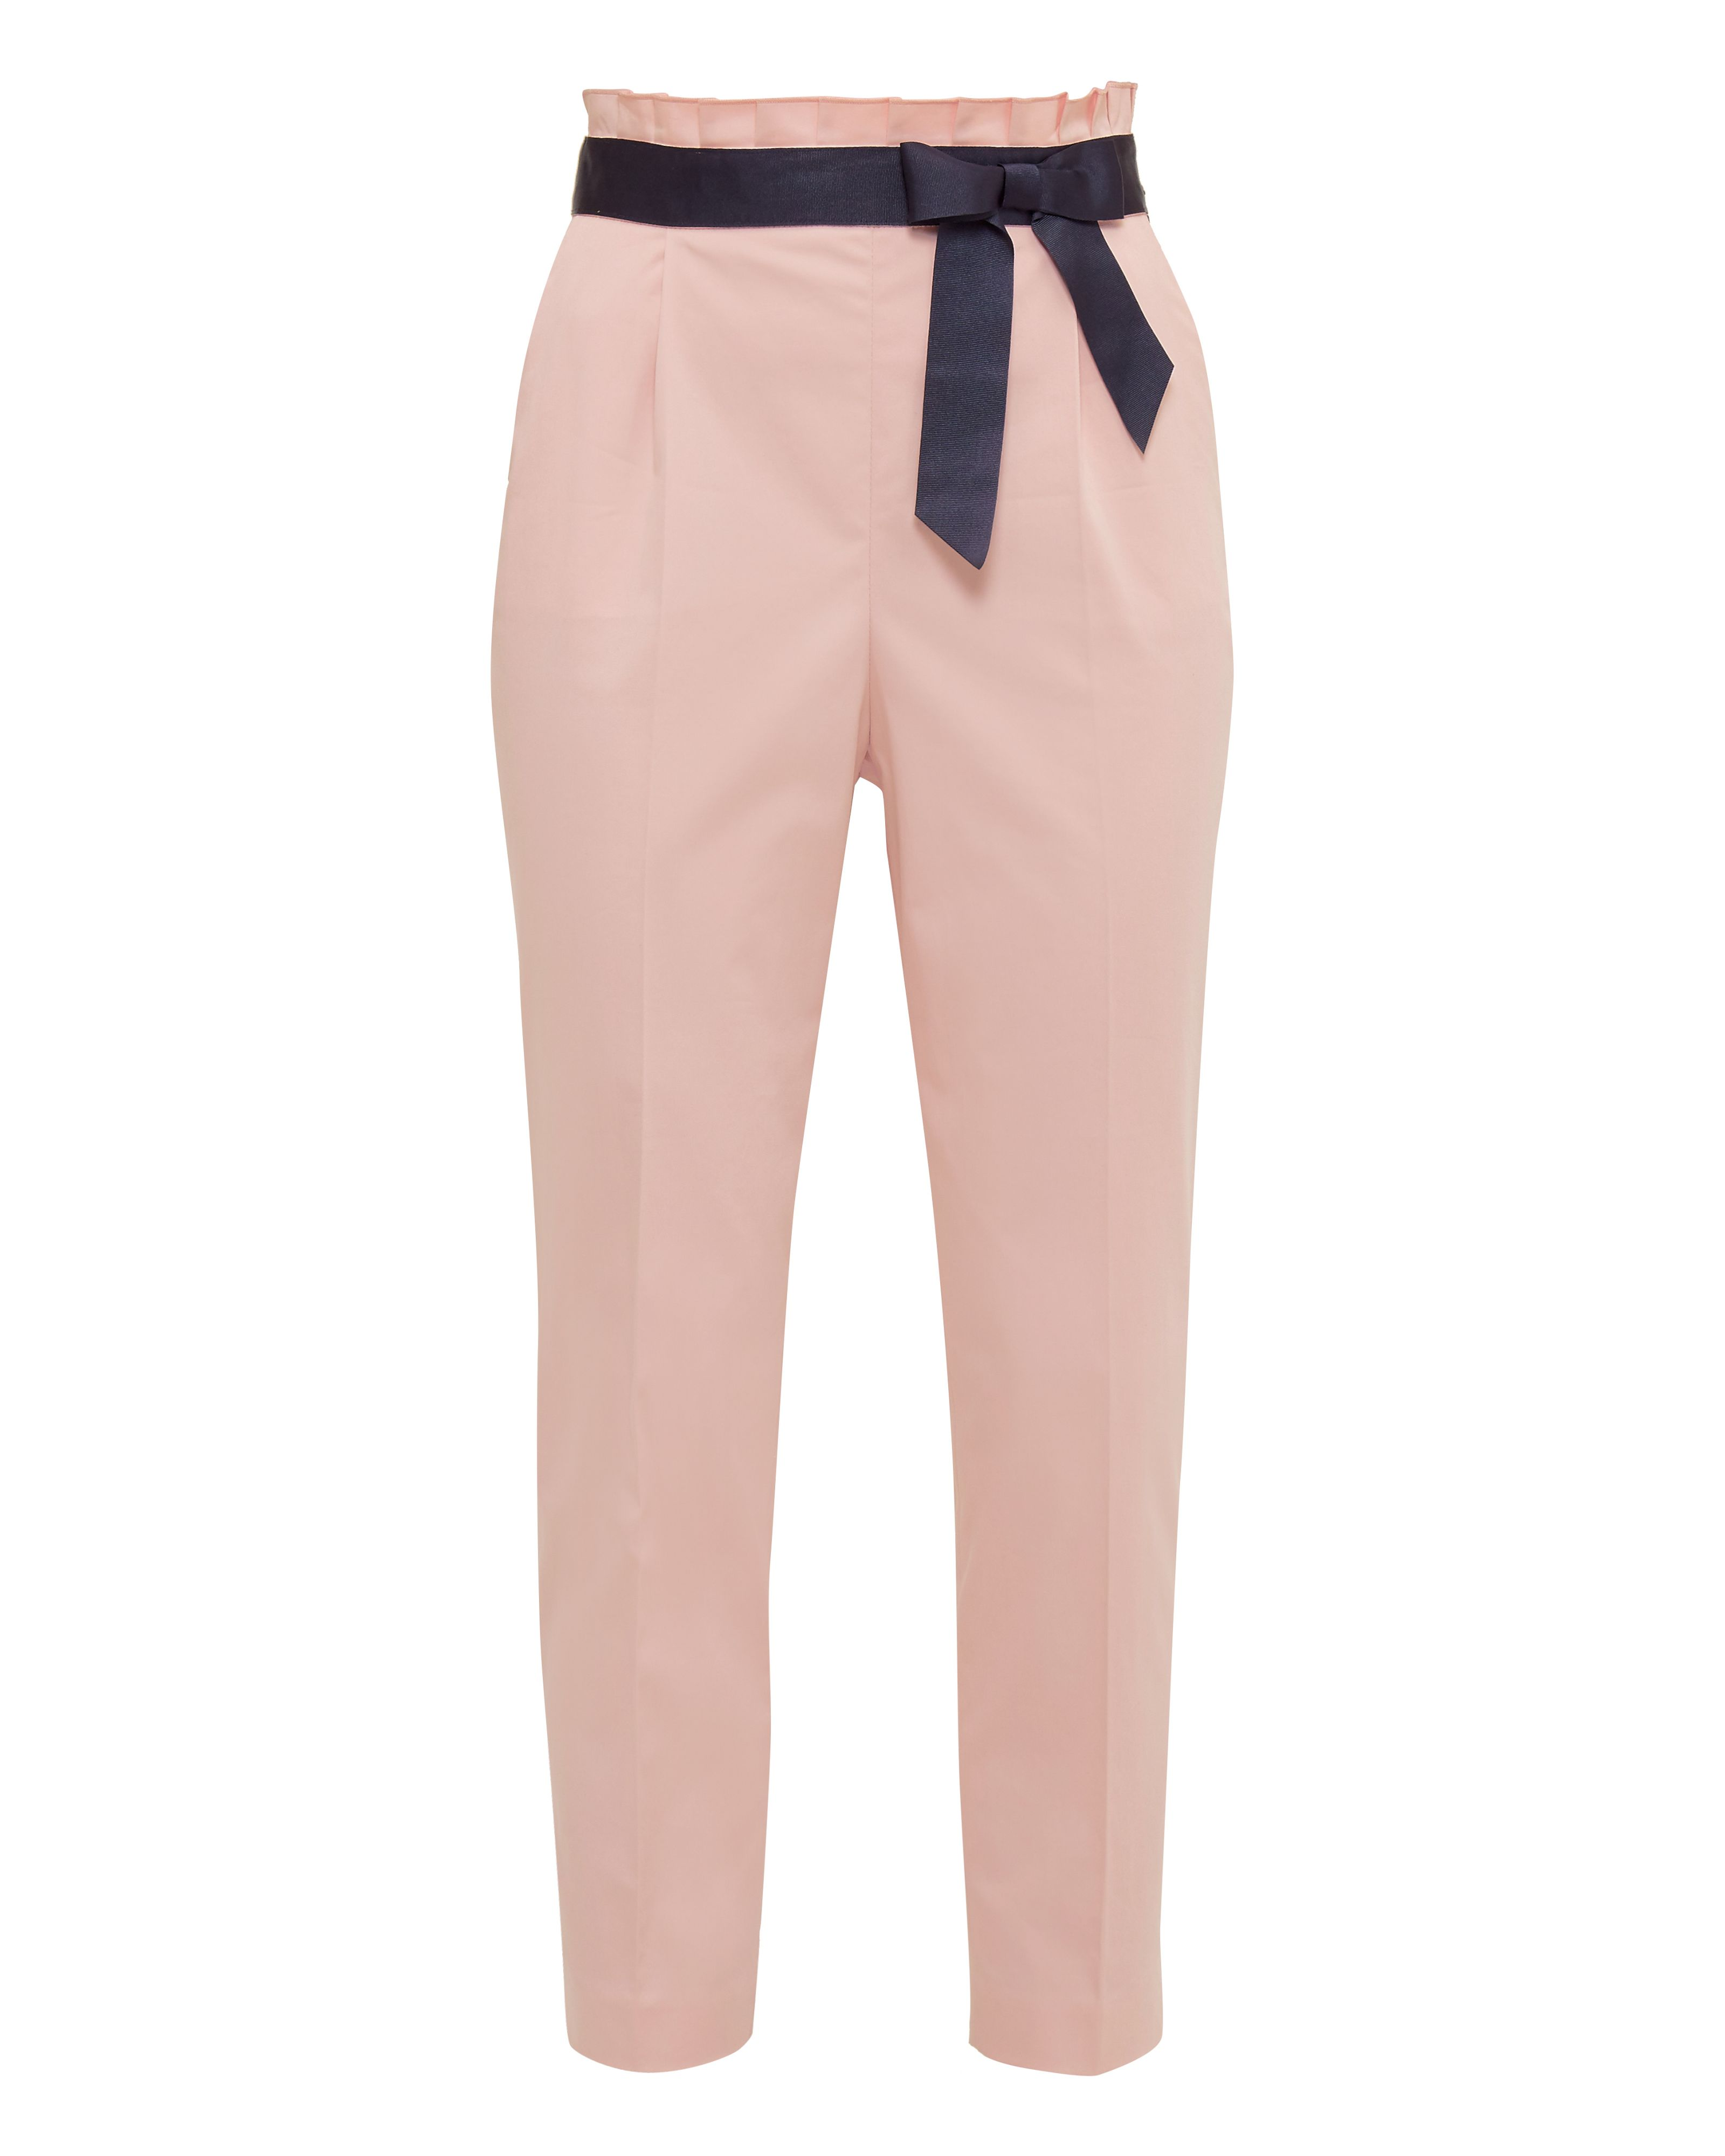 Ted Baker Verbo Ruffle Waistline Cotton-Blend Trousers, Pink